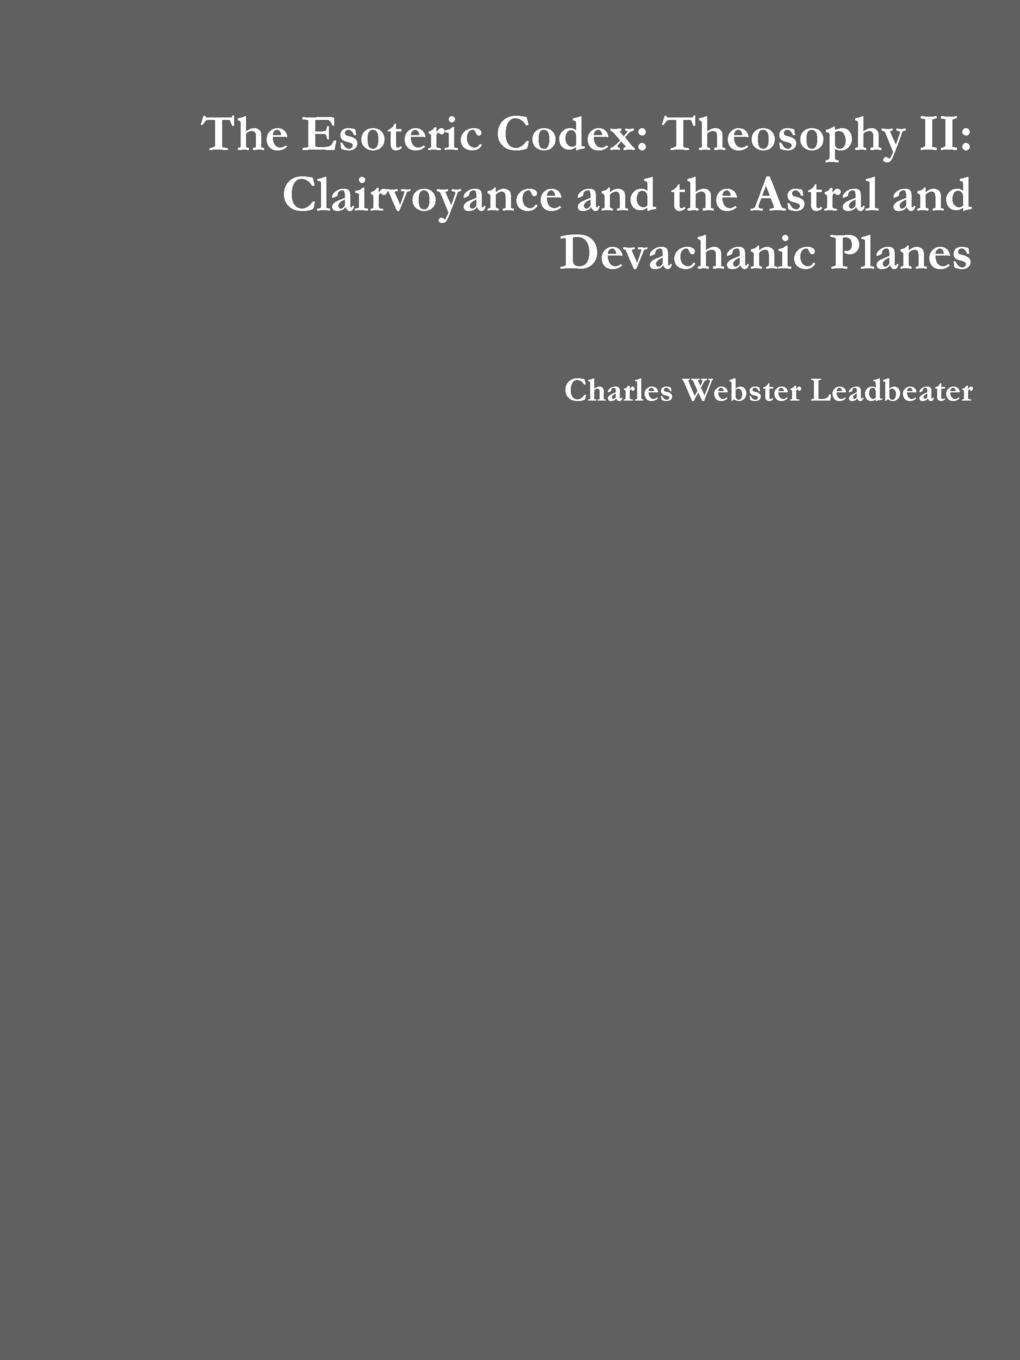 Charles Webster Leadbeater The Esoteric Codex. Theosophy II: Clairvoyance and the Astral Devachanic Planes